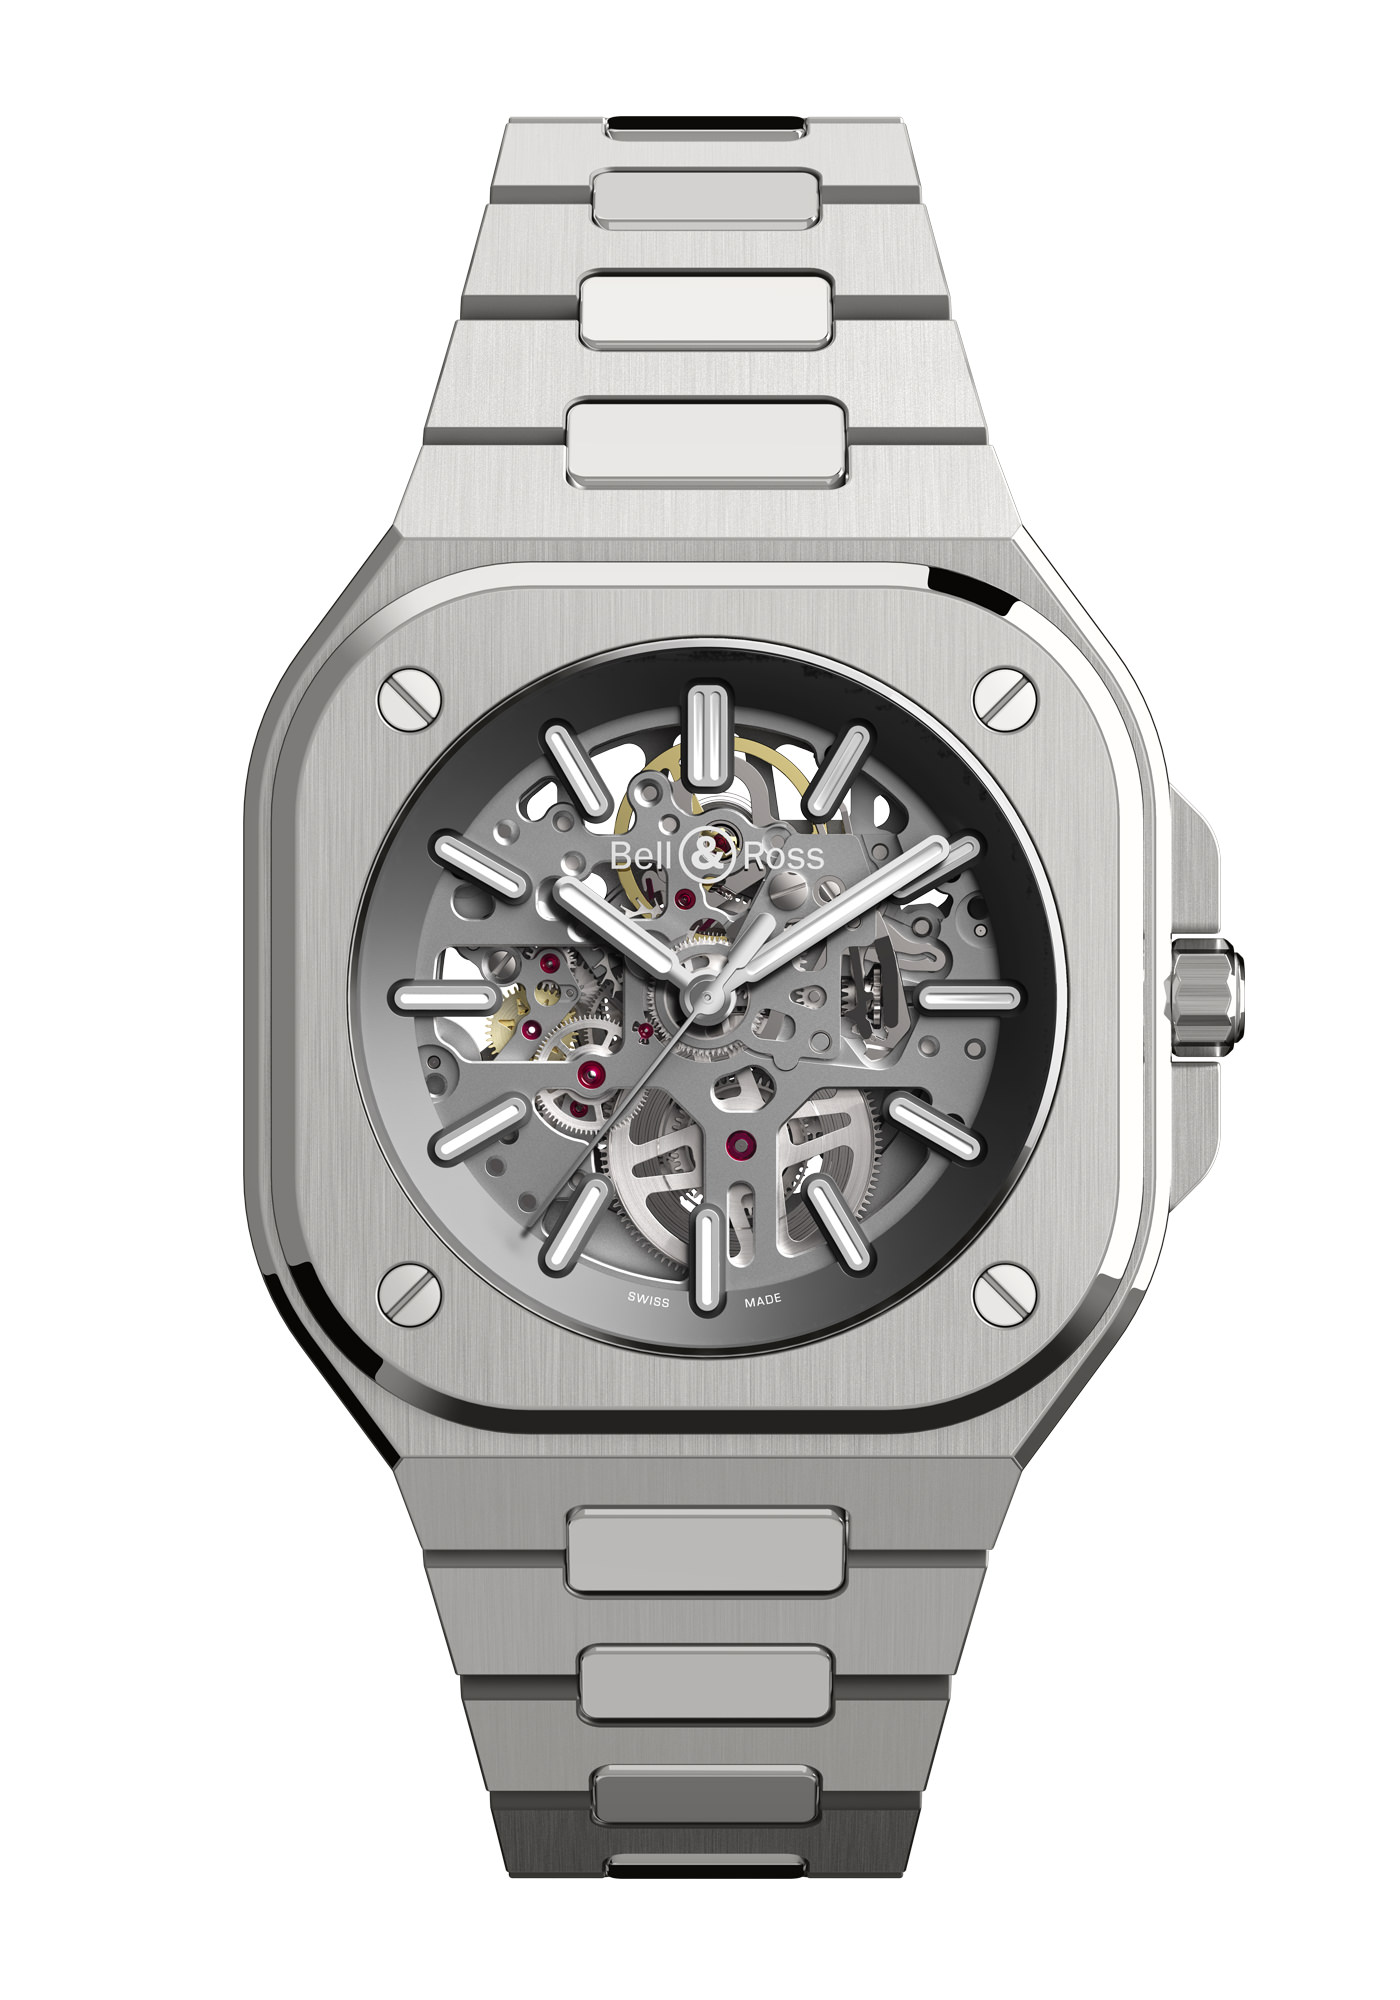 Montre Bell & Ross Nouvelle Collection BR05 Skeleton Acier